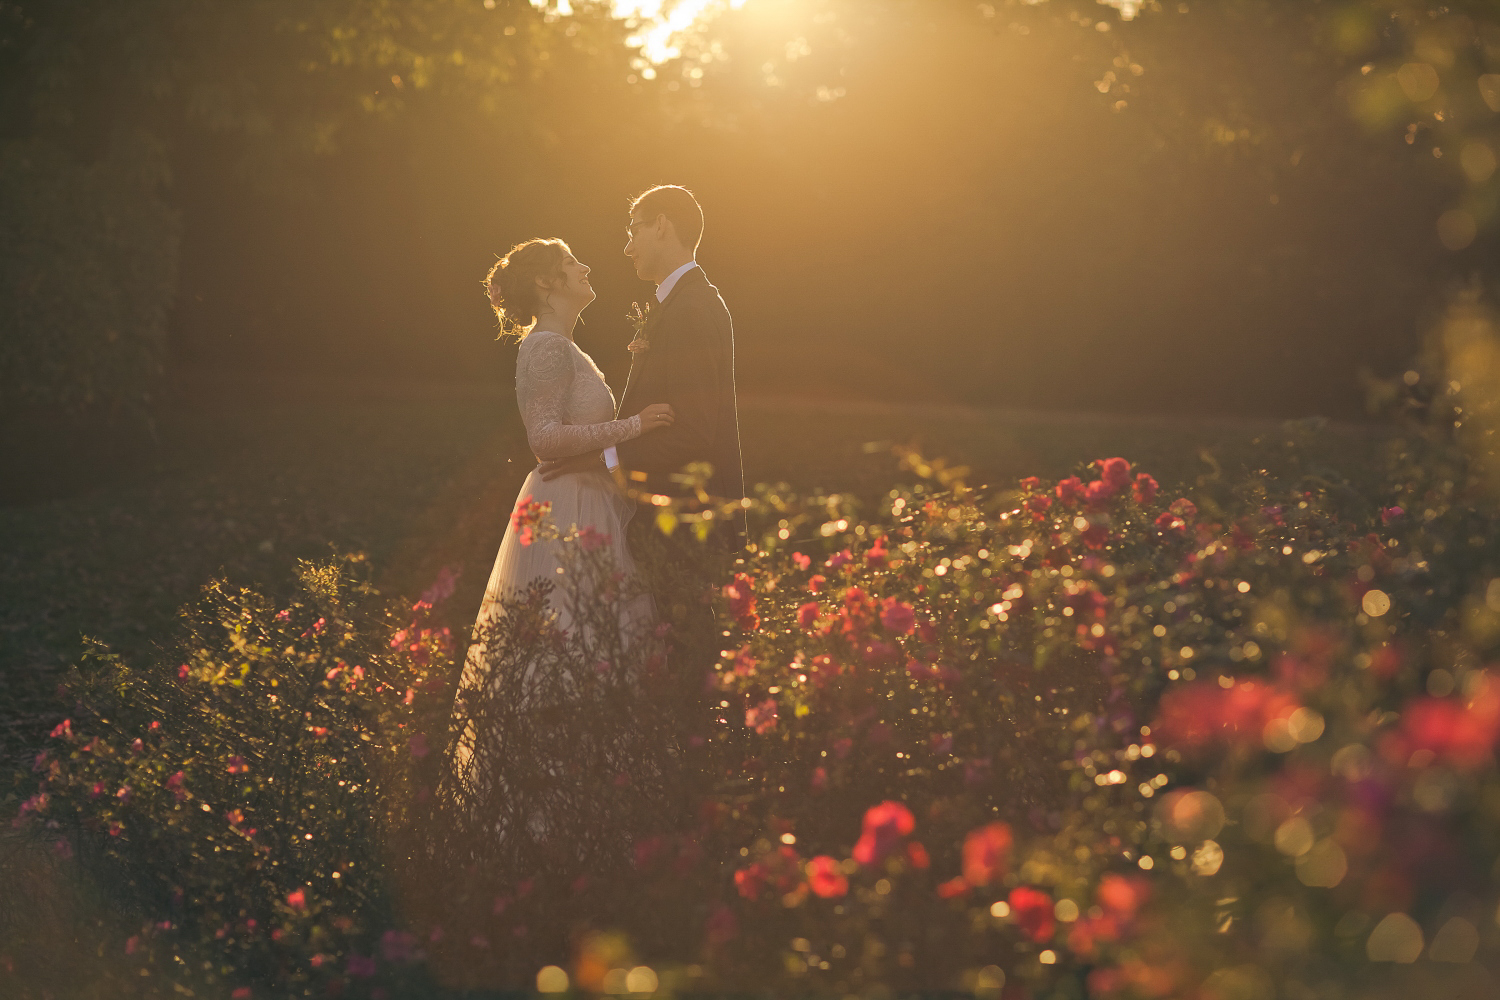 A beautiful photo of a bride and groom, shooting towards the sun, with roses in the foreground